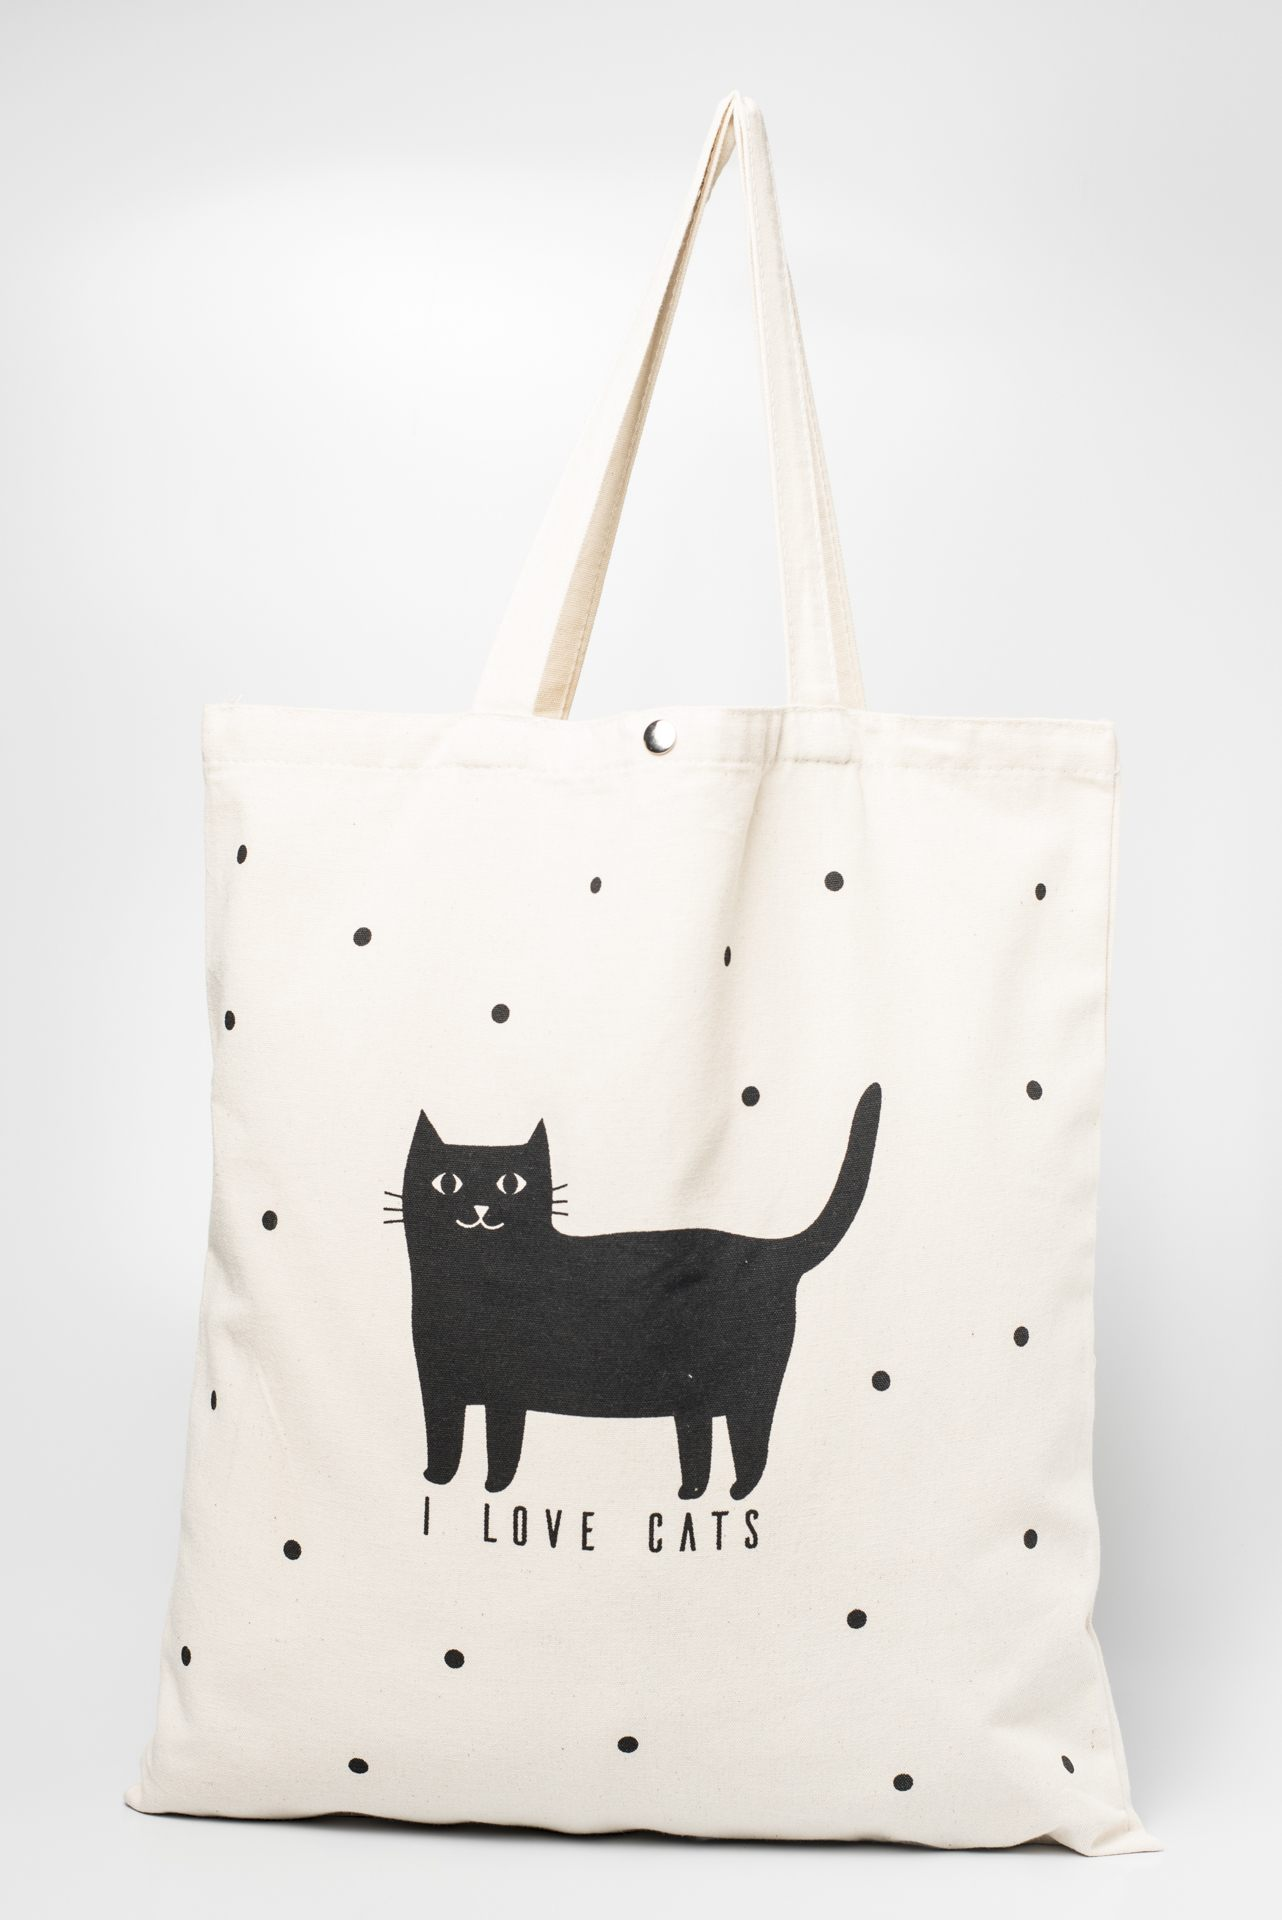 Tote Bag I Love Cats - Felicis - Felicis